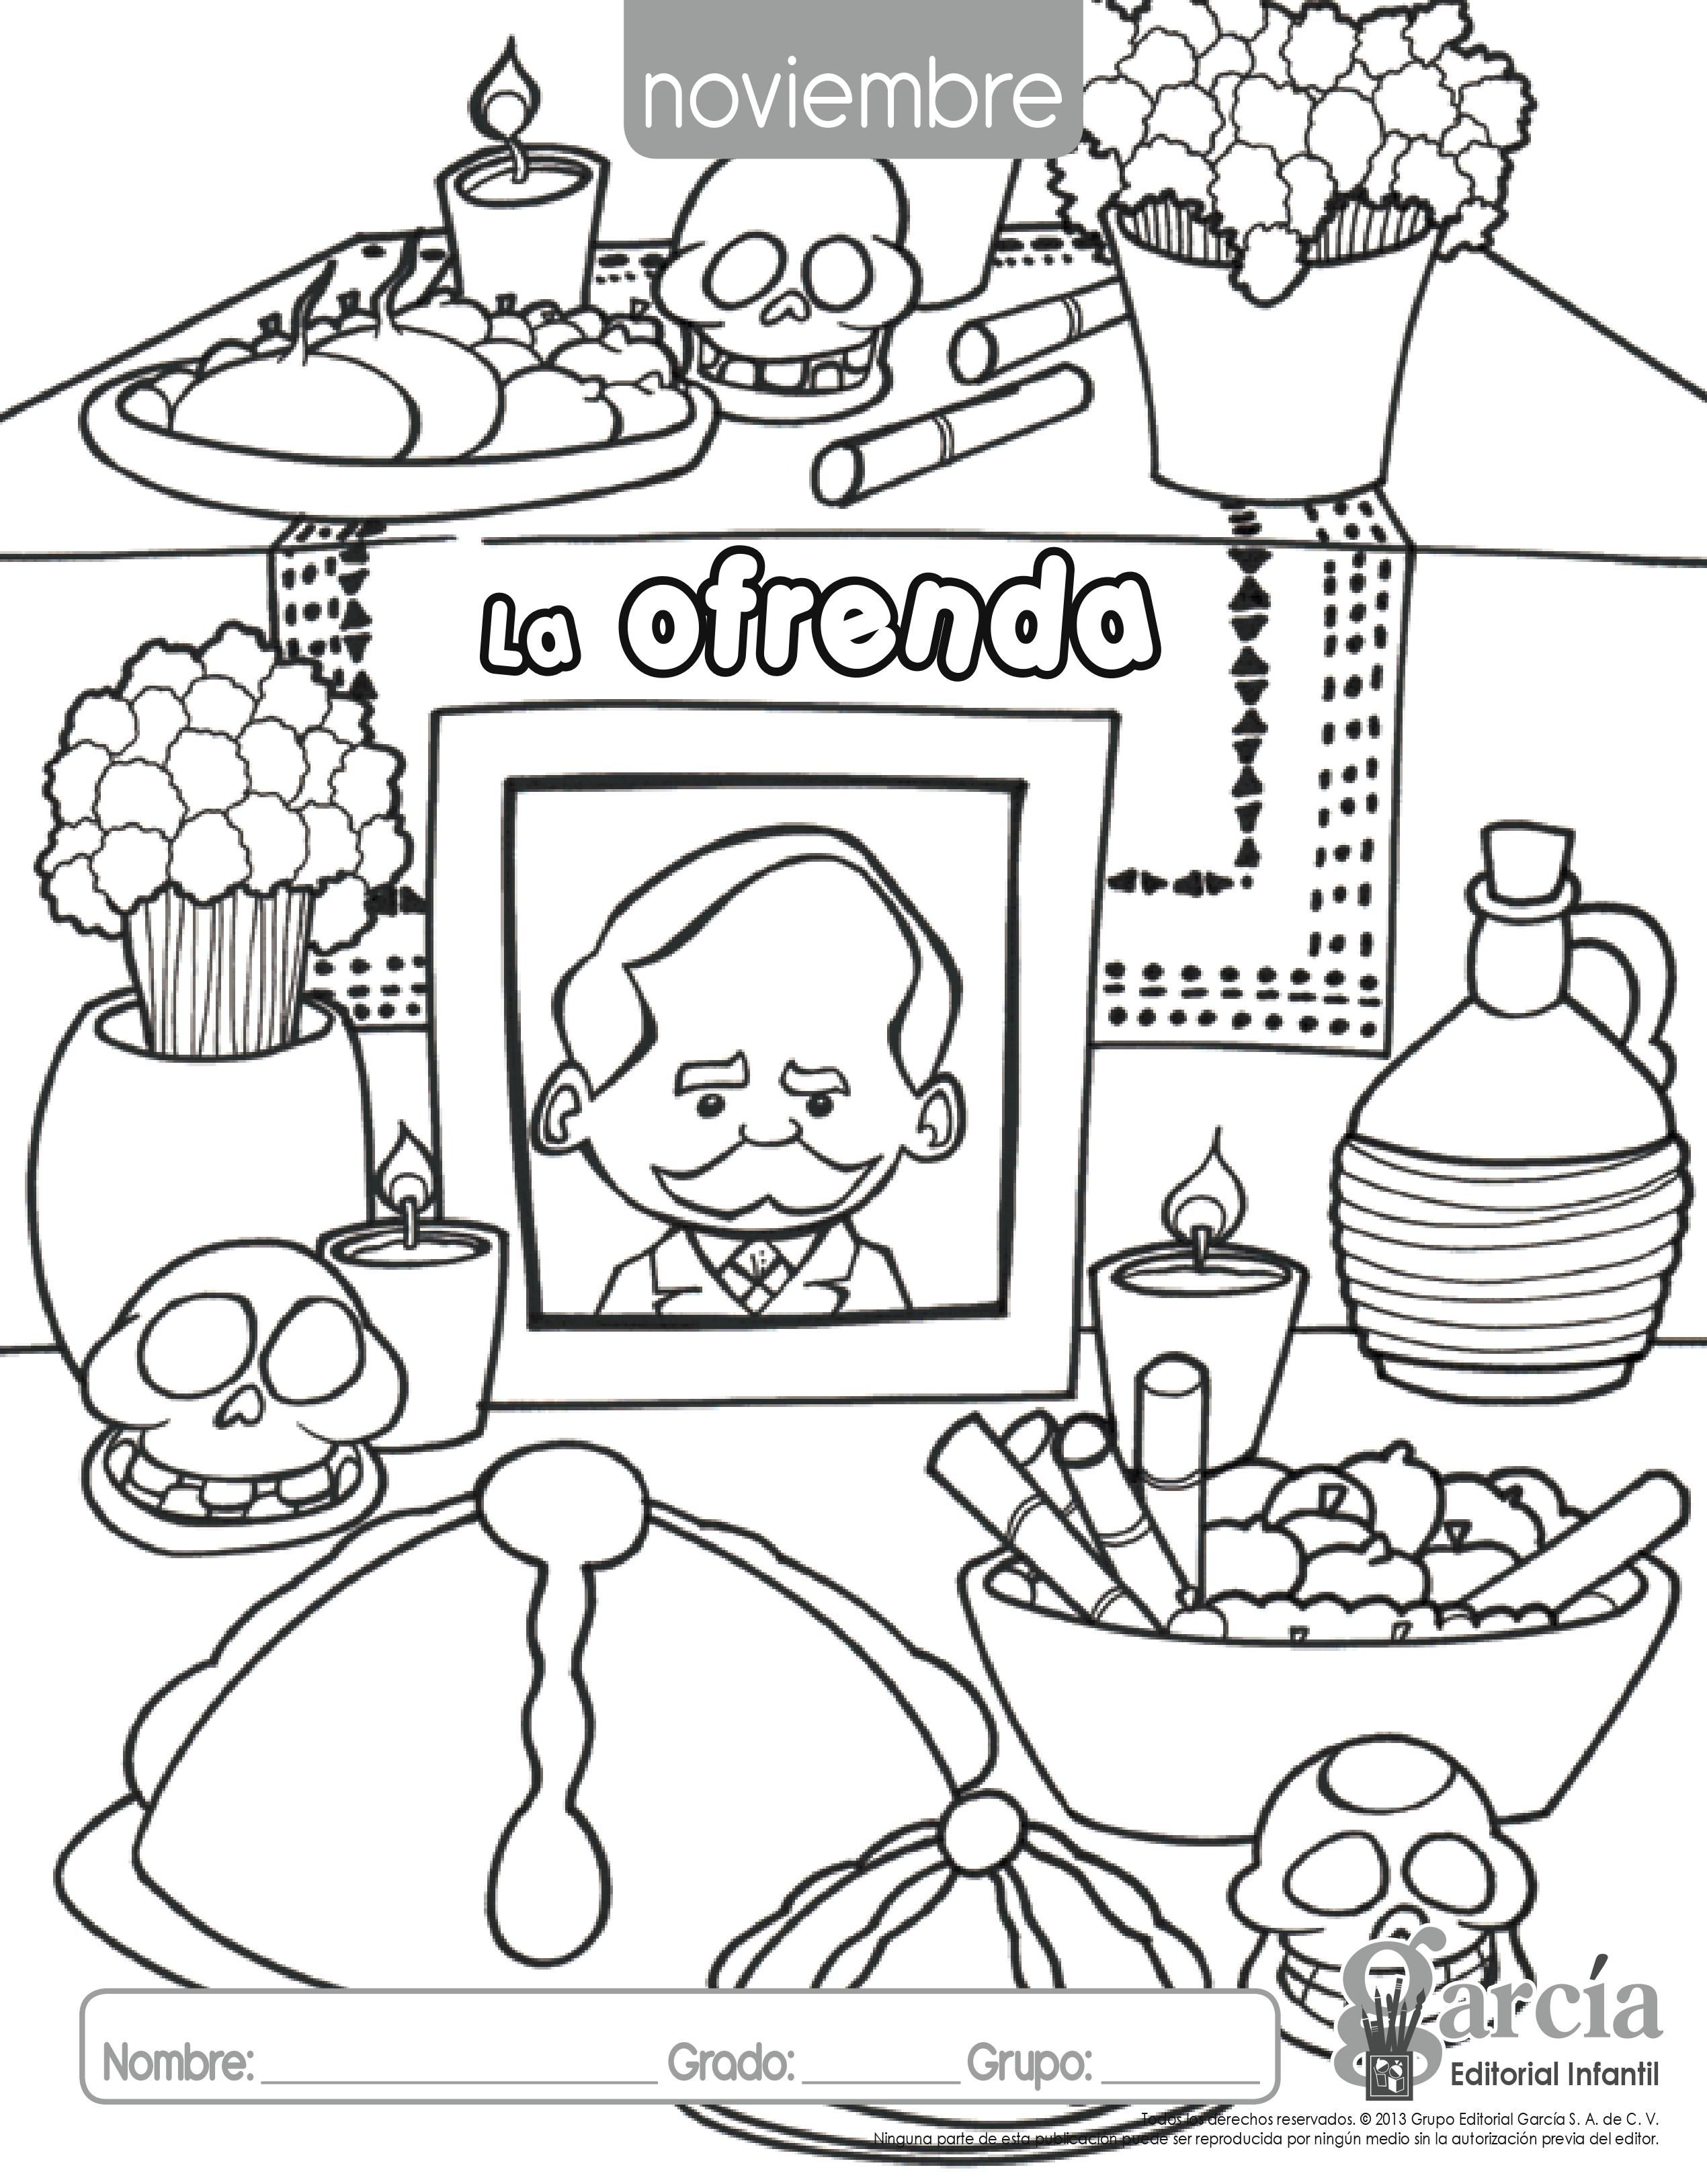 worksheet Day Of The Dead Worksheets pin by alma cuevas on printable pinterest school spanish and classroom management worksheets english class homework ideas kind preschool third